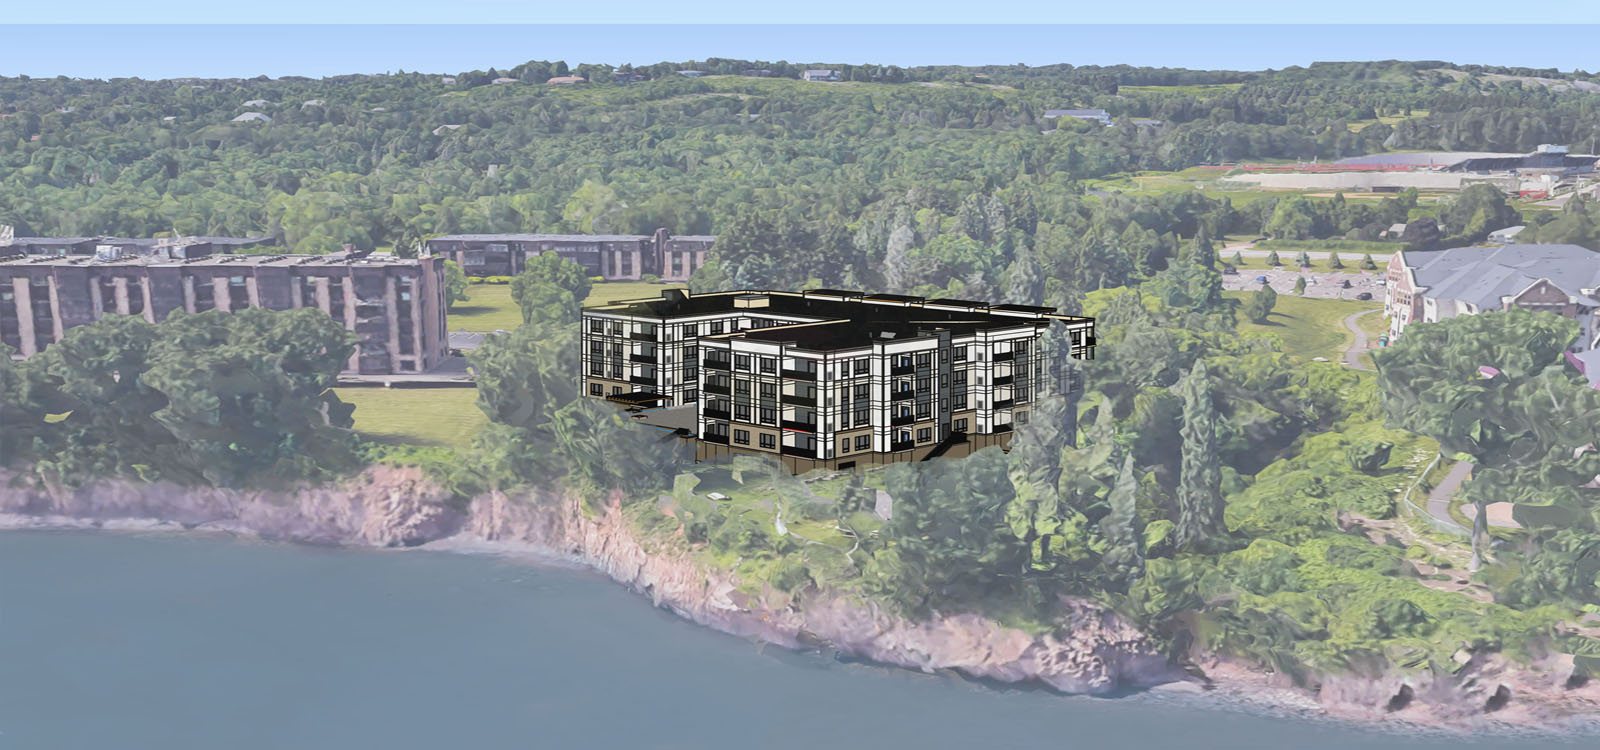 Zvago building overlooking Lake Superior